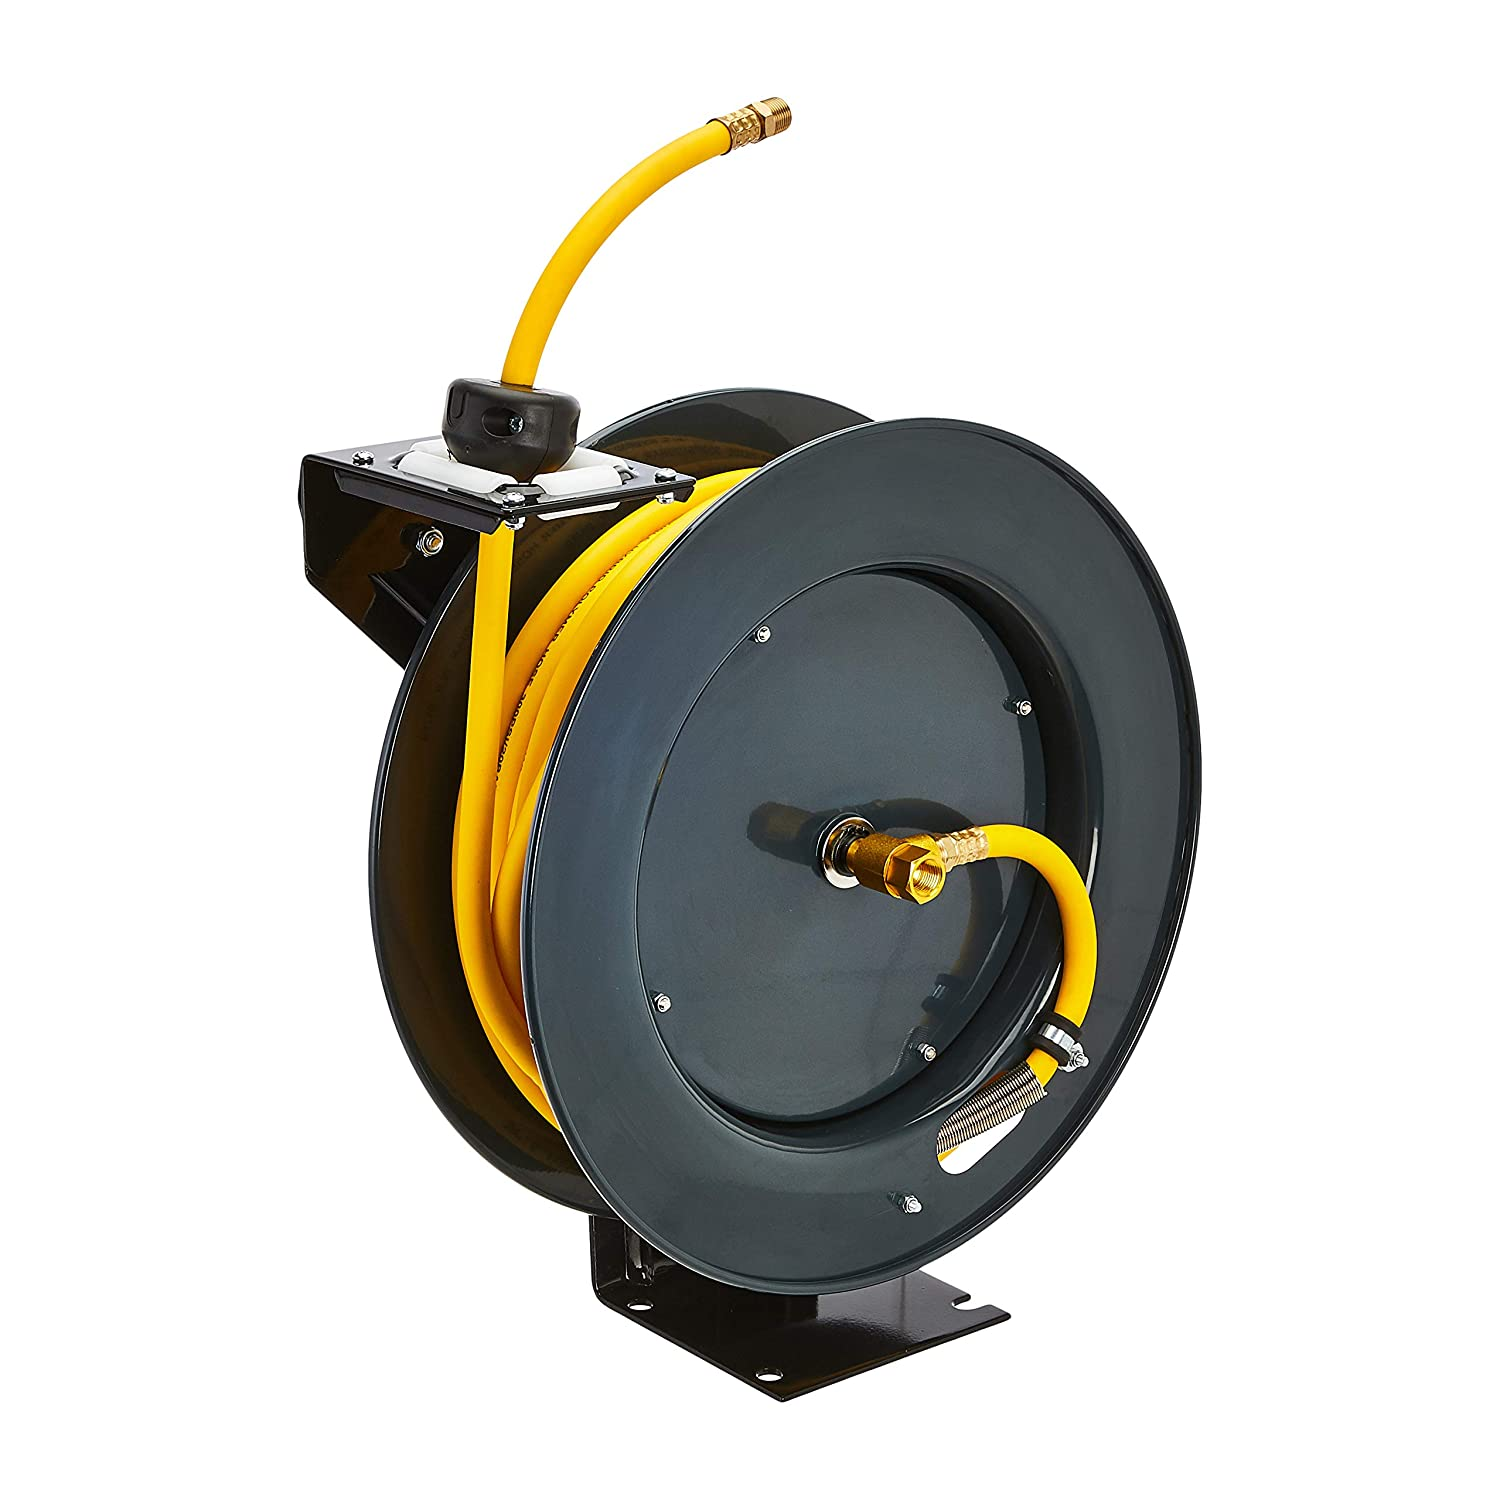 "AmazonCommercial Air Tool Hose Reel Water Retractable Steel 3/8"" inch x 50' Feet Premium Commercial Flex Hybrid Polymer Hose, Max. 300 PSI Heavy Duty Spring Driven Construction"